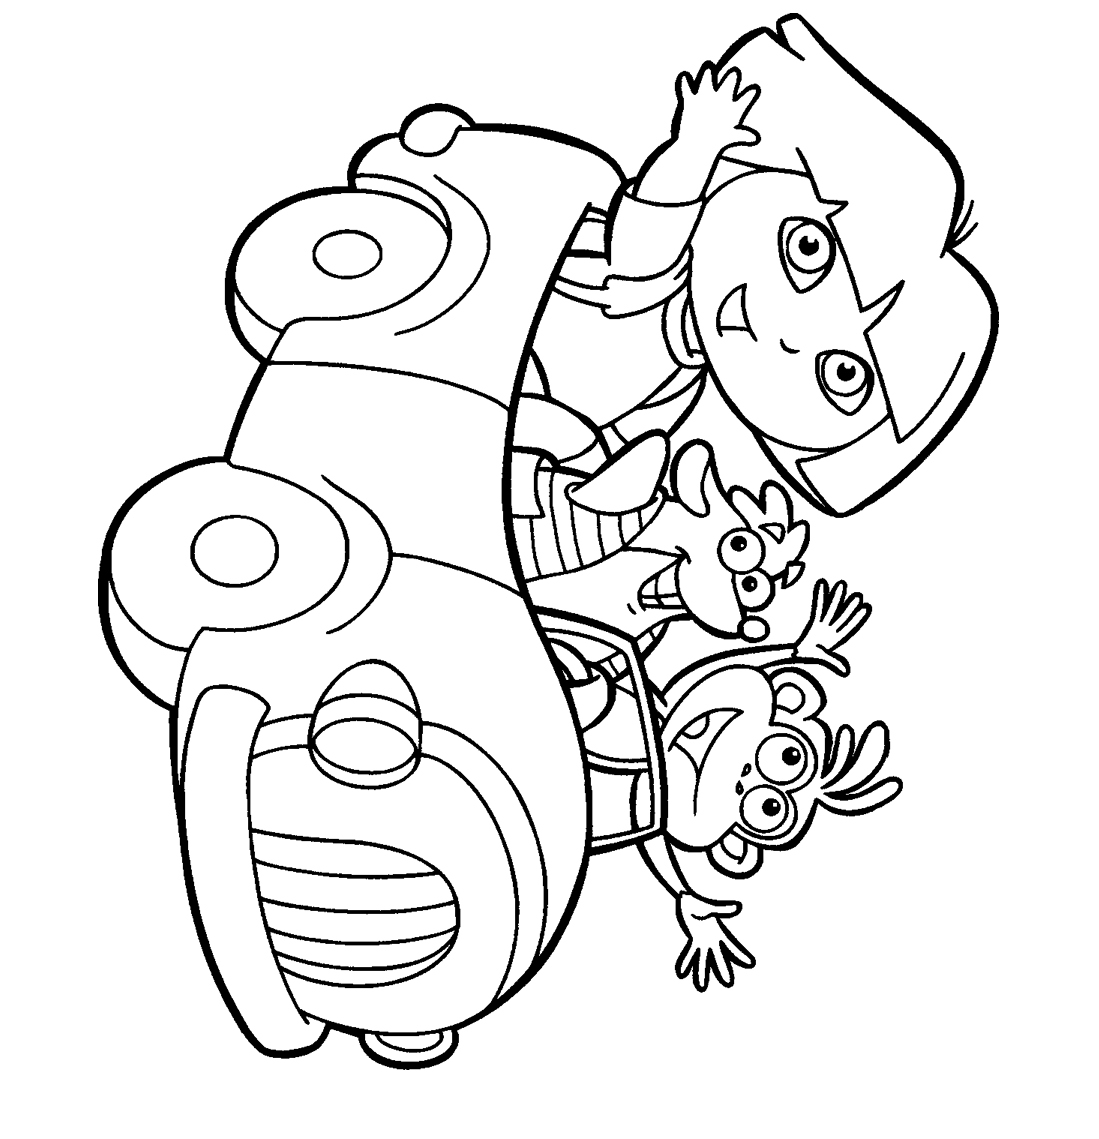 Printable coloring pages for kids coloring pages for kids for Free coloring book pages to print